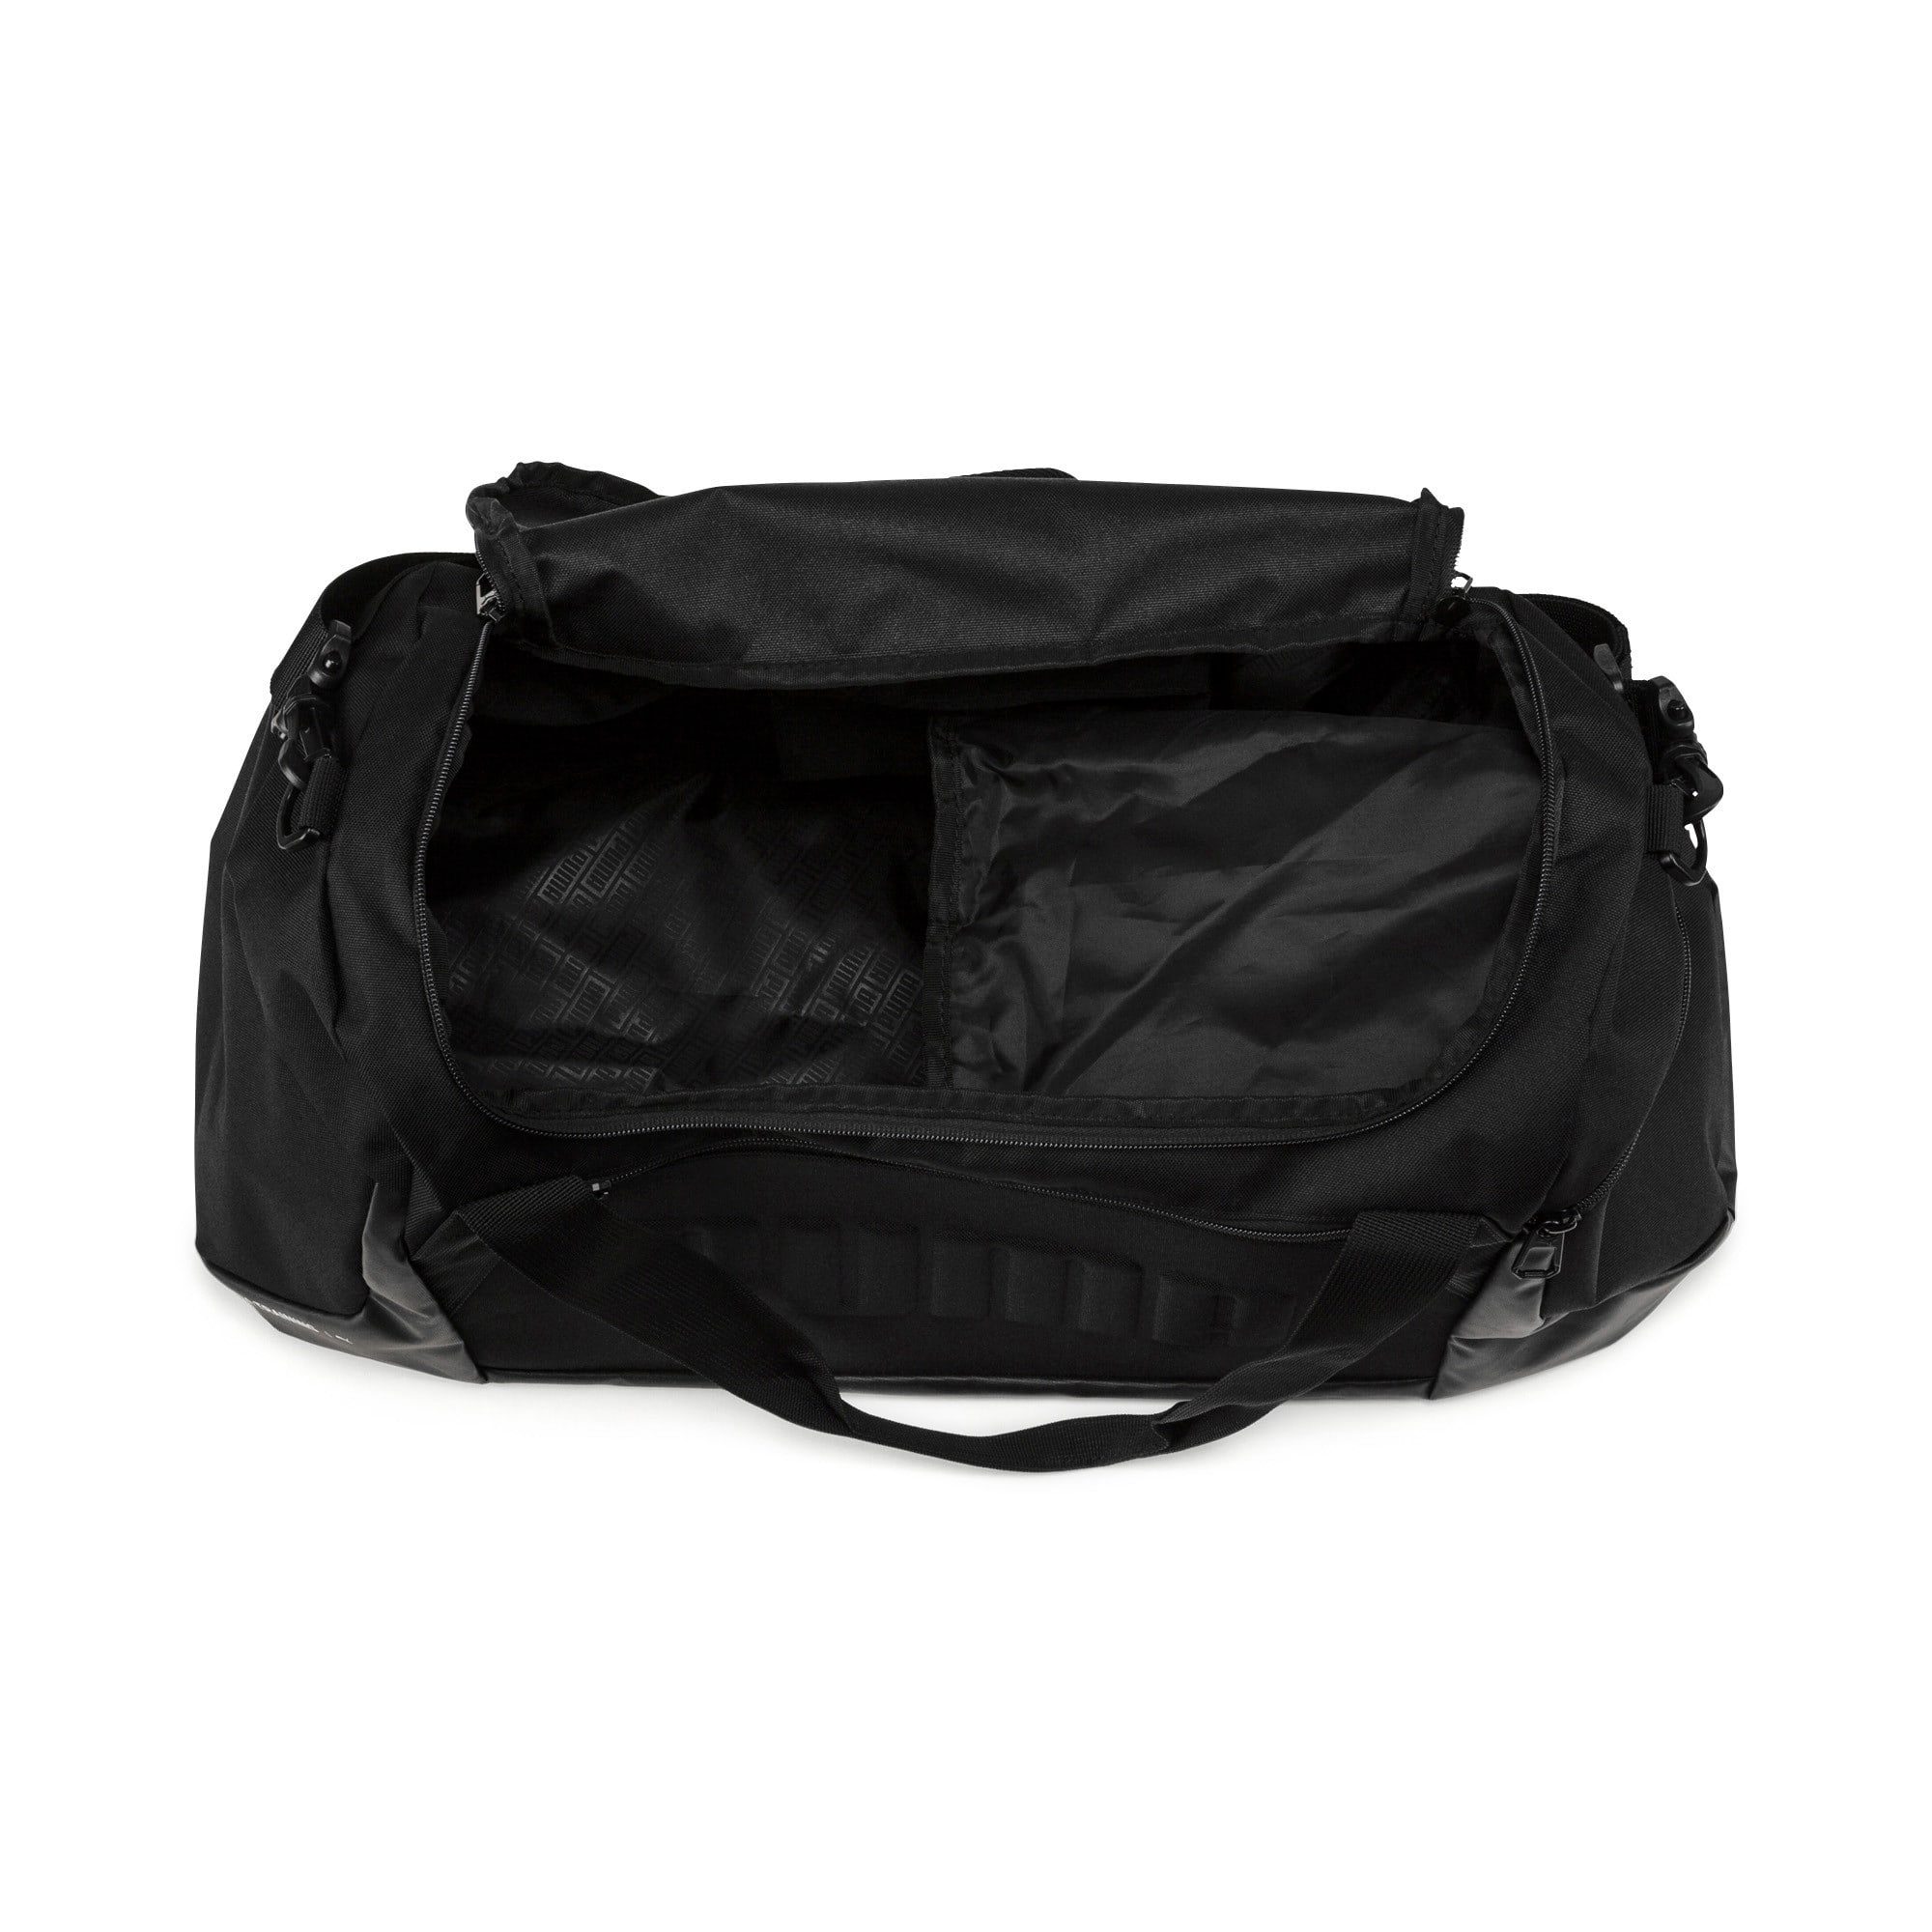 Thumbnail 4 of GYM Duffel Bag, Puma Black, medium